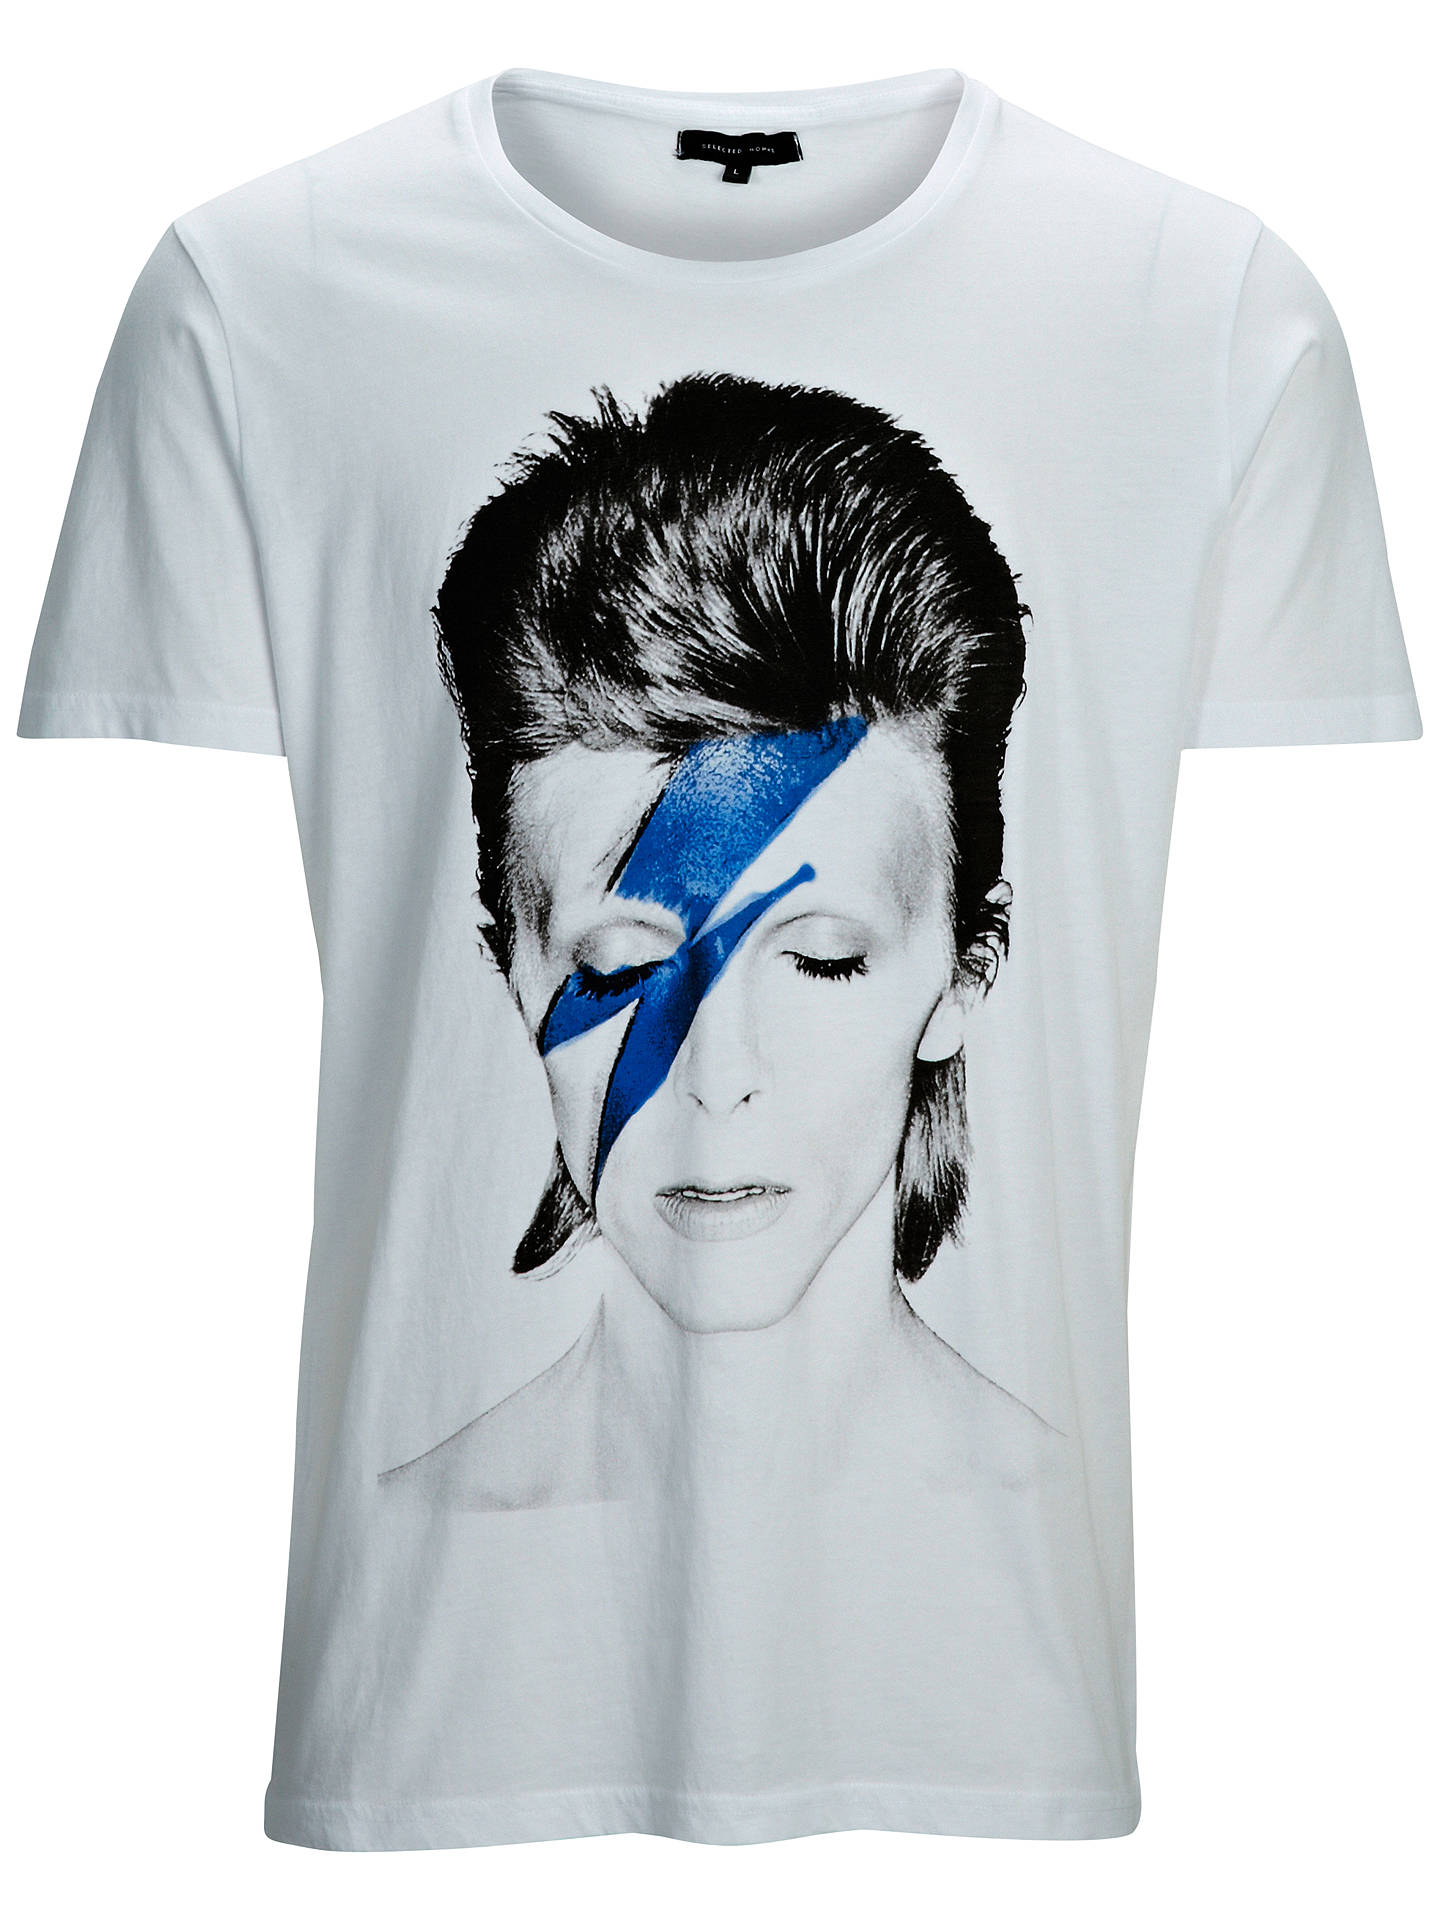 Selected Homme David Bowie Short Sleeve Crew Neck T Shirt White At John Lewis Partners